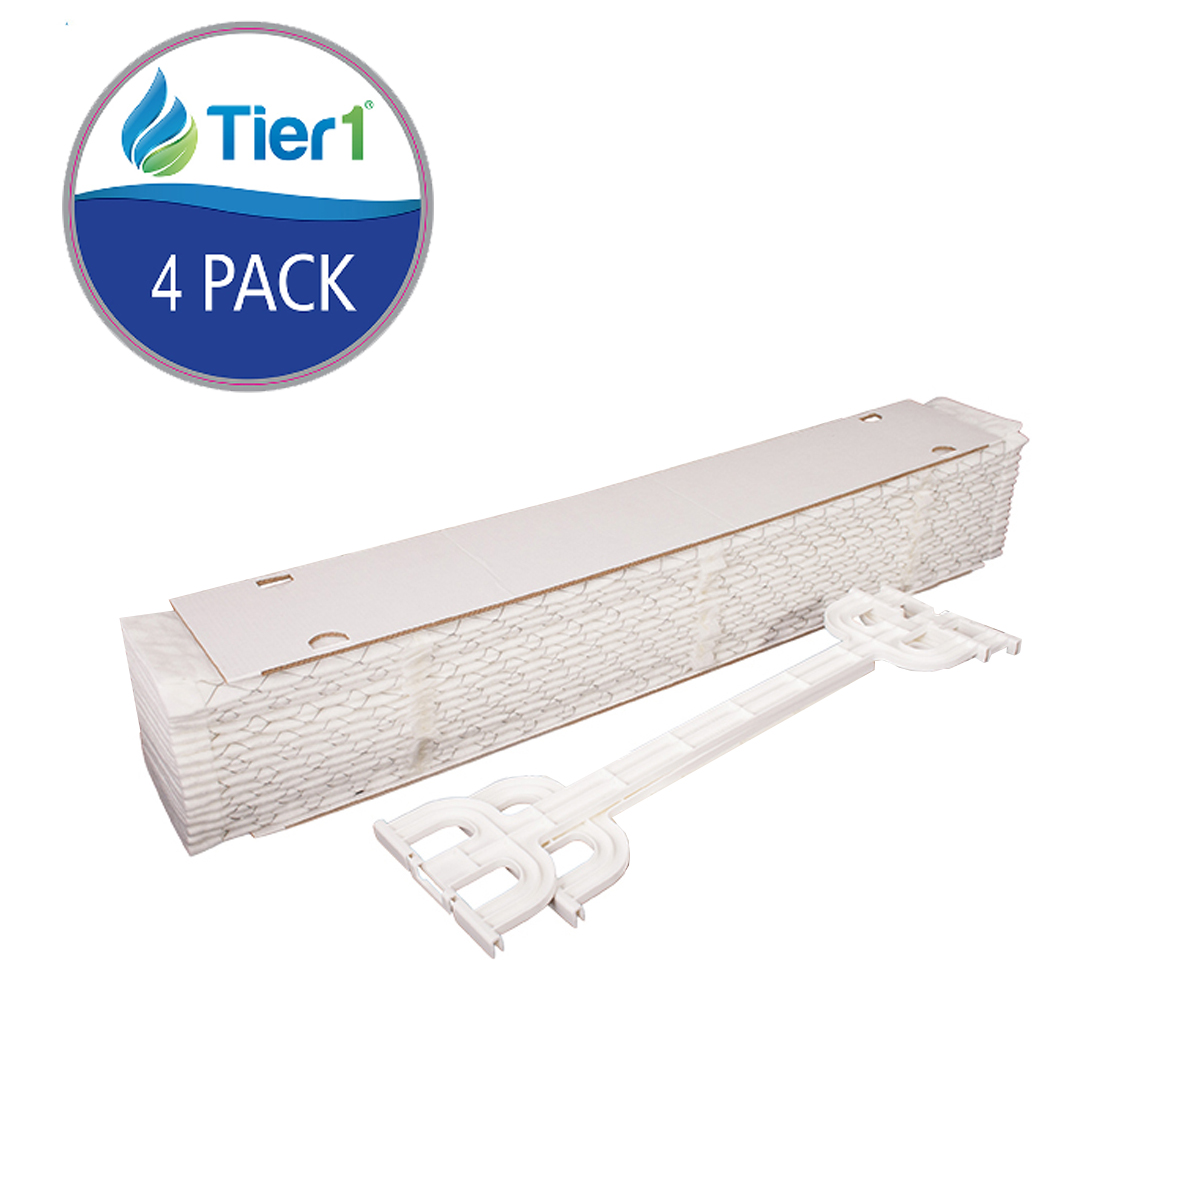 Air Purifier 413 Replacement Filter by Tier1 (4-Pack) TIER1_AF413_4_PACK